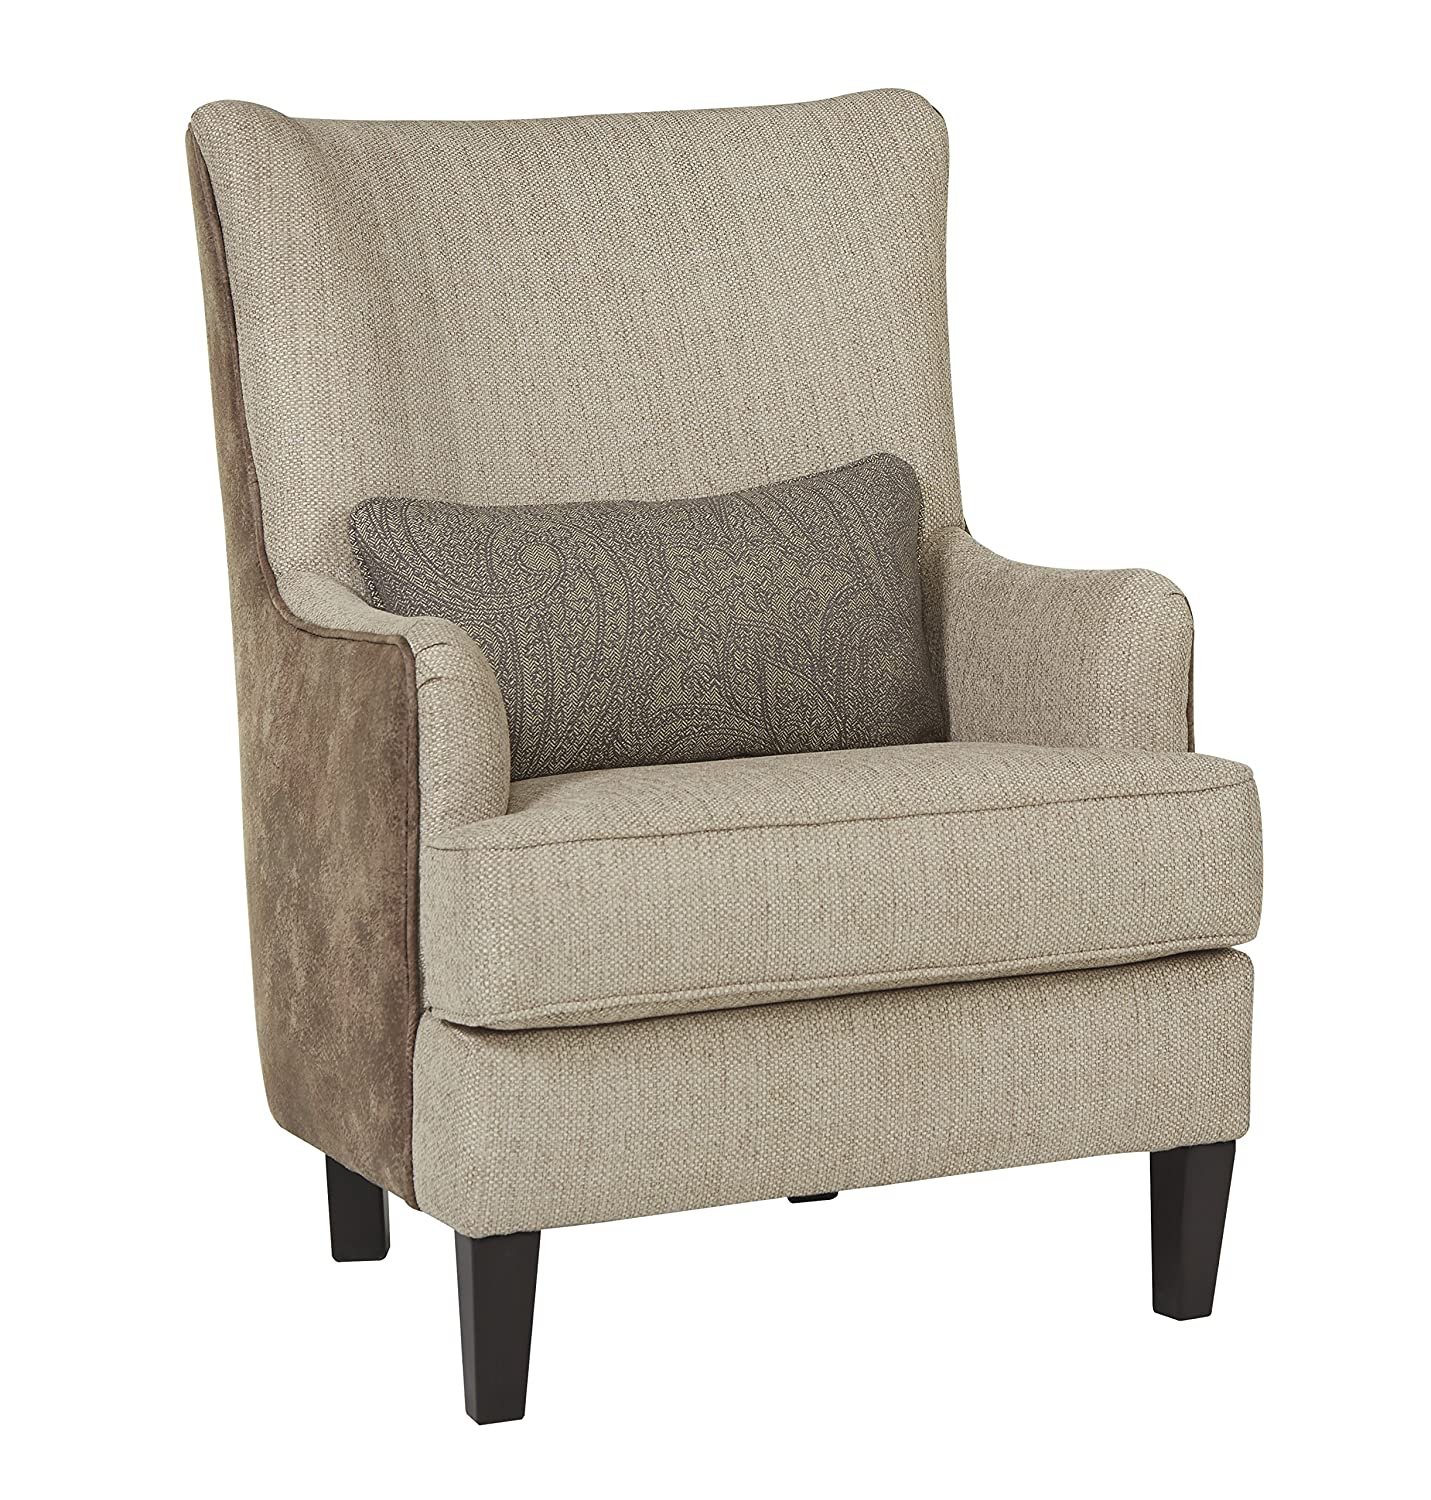 Amazon com ashley furniture 4110121 baxley accent chair jute kitchen dining